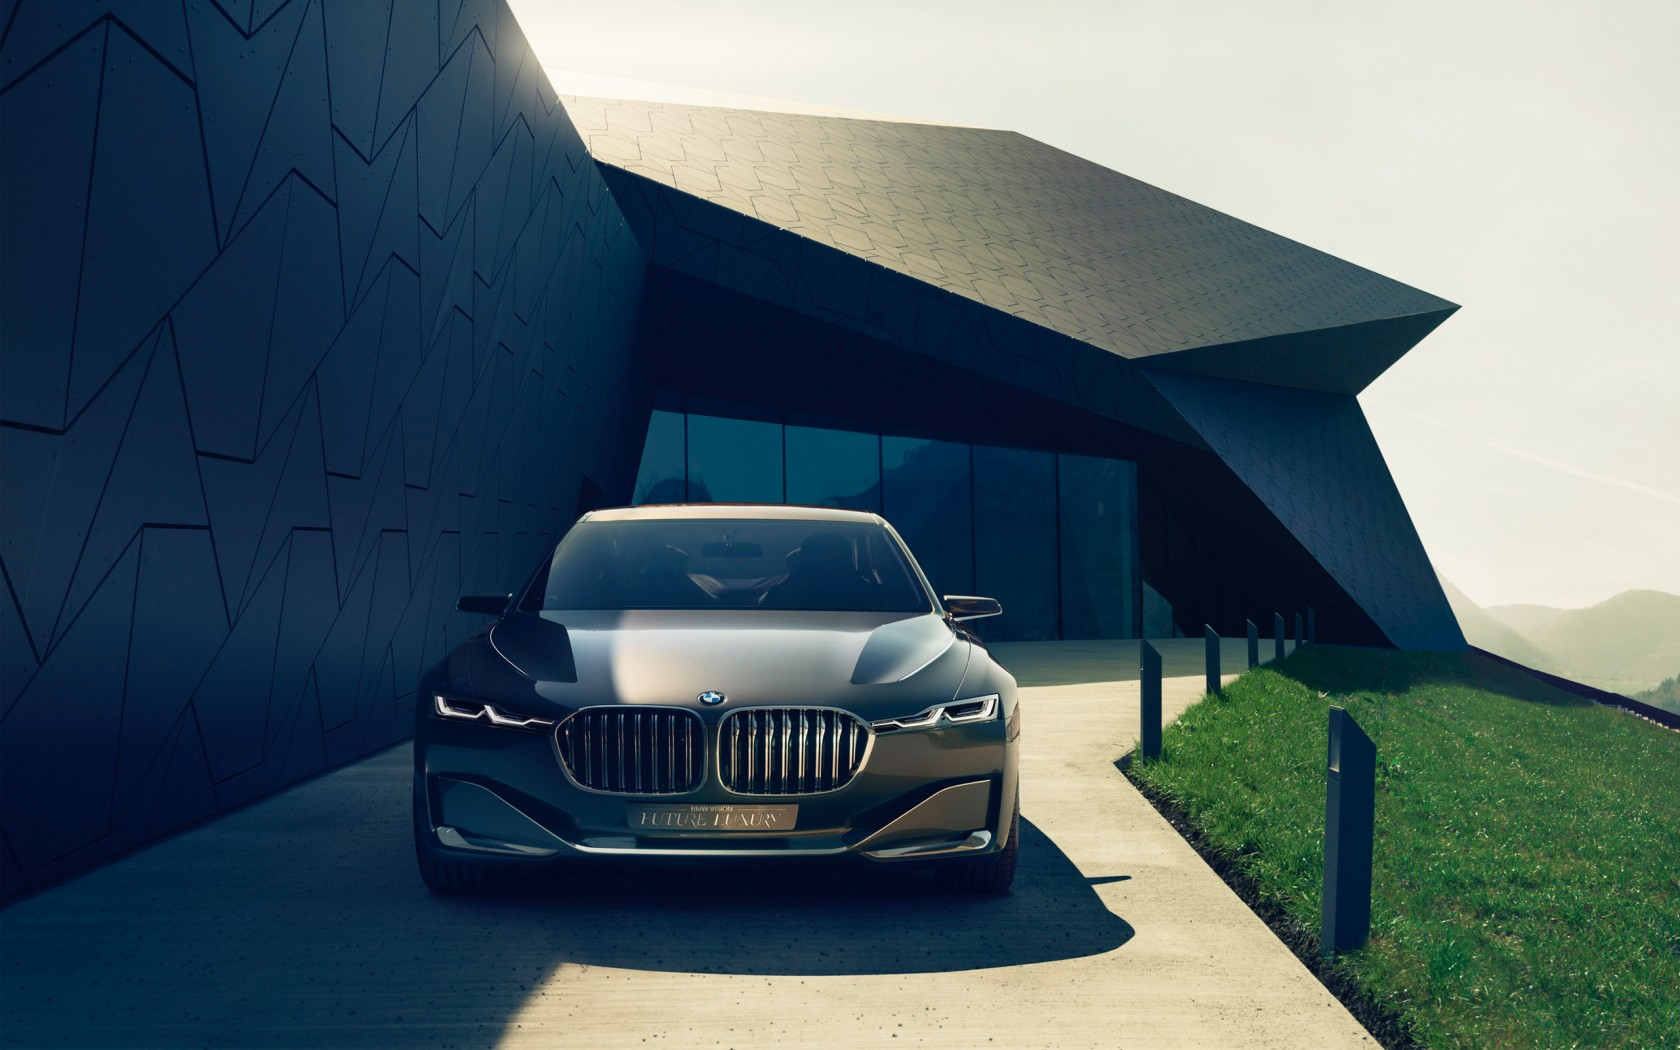 Bmw 3d Hd Wallpapers Bmw Vision Future Luxury Car Wallpapers Hd Wallpapers